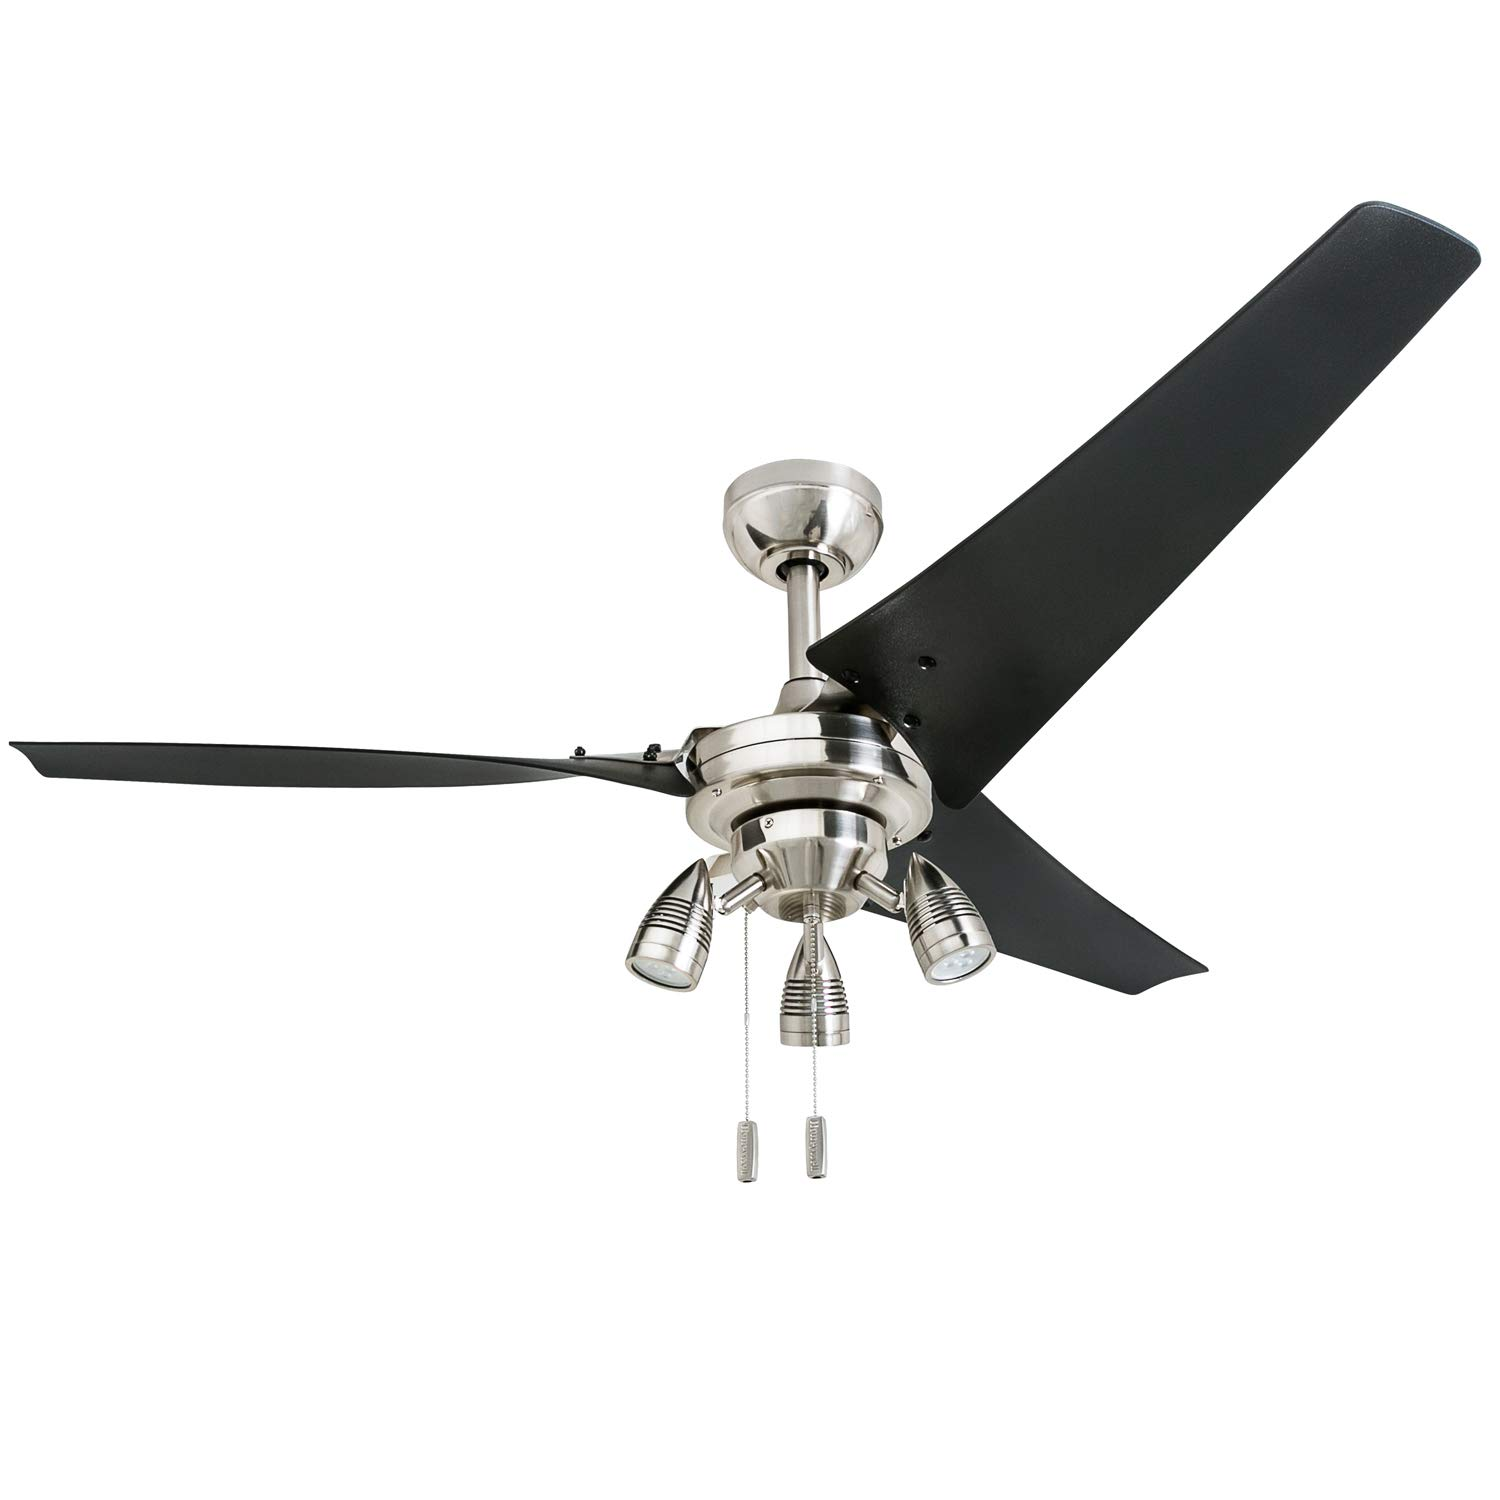 Honeywell 50611 Phelix High Power Ceiling Fan, LED 56'' Industrial, 3 Black ABS Blades, Brushed Nickel